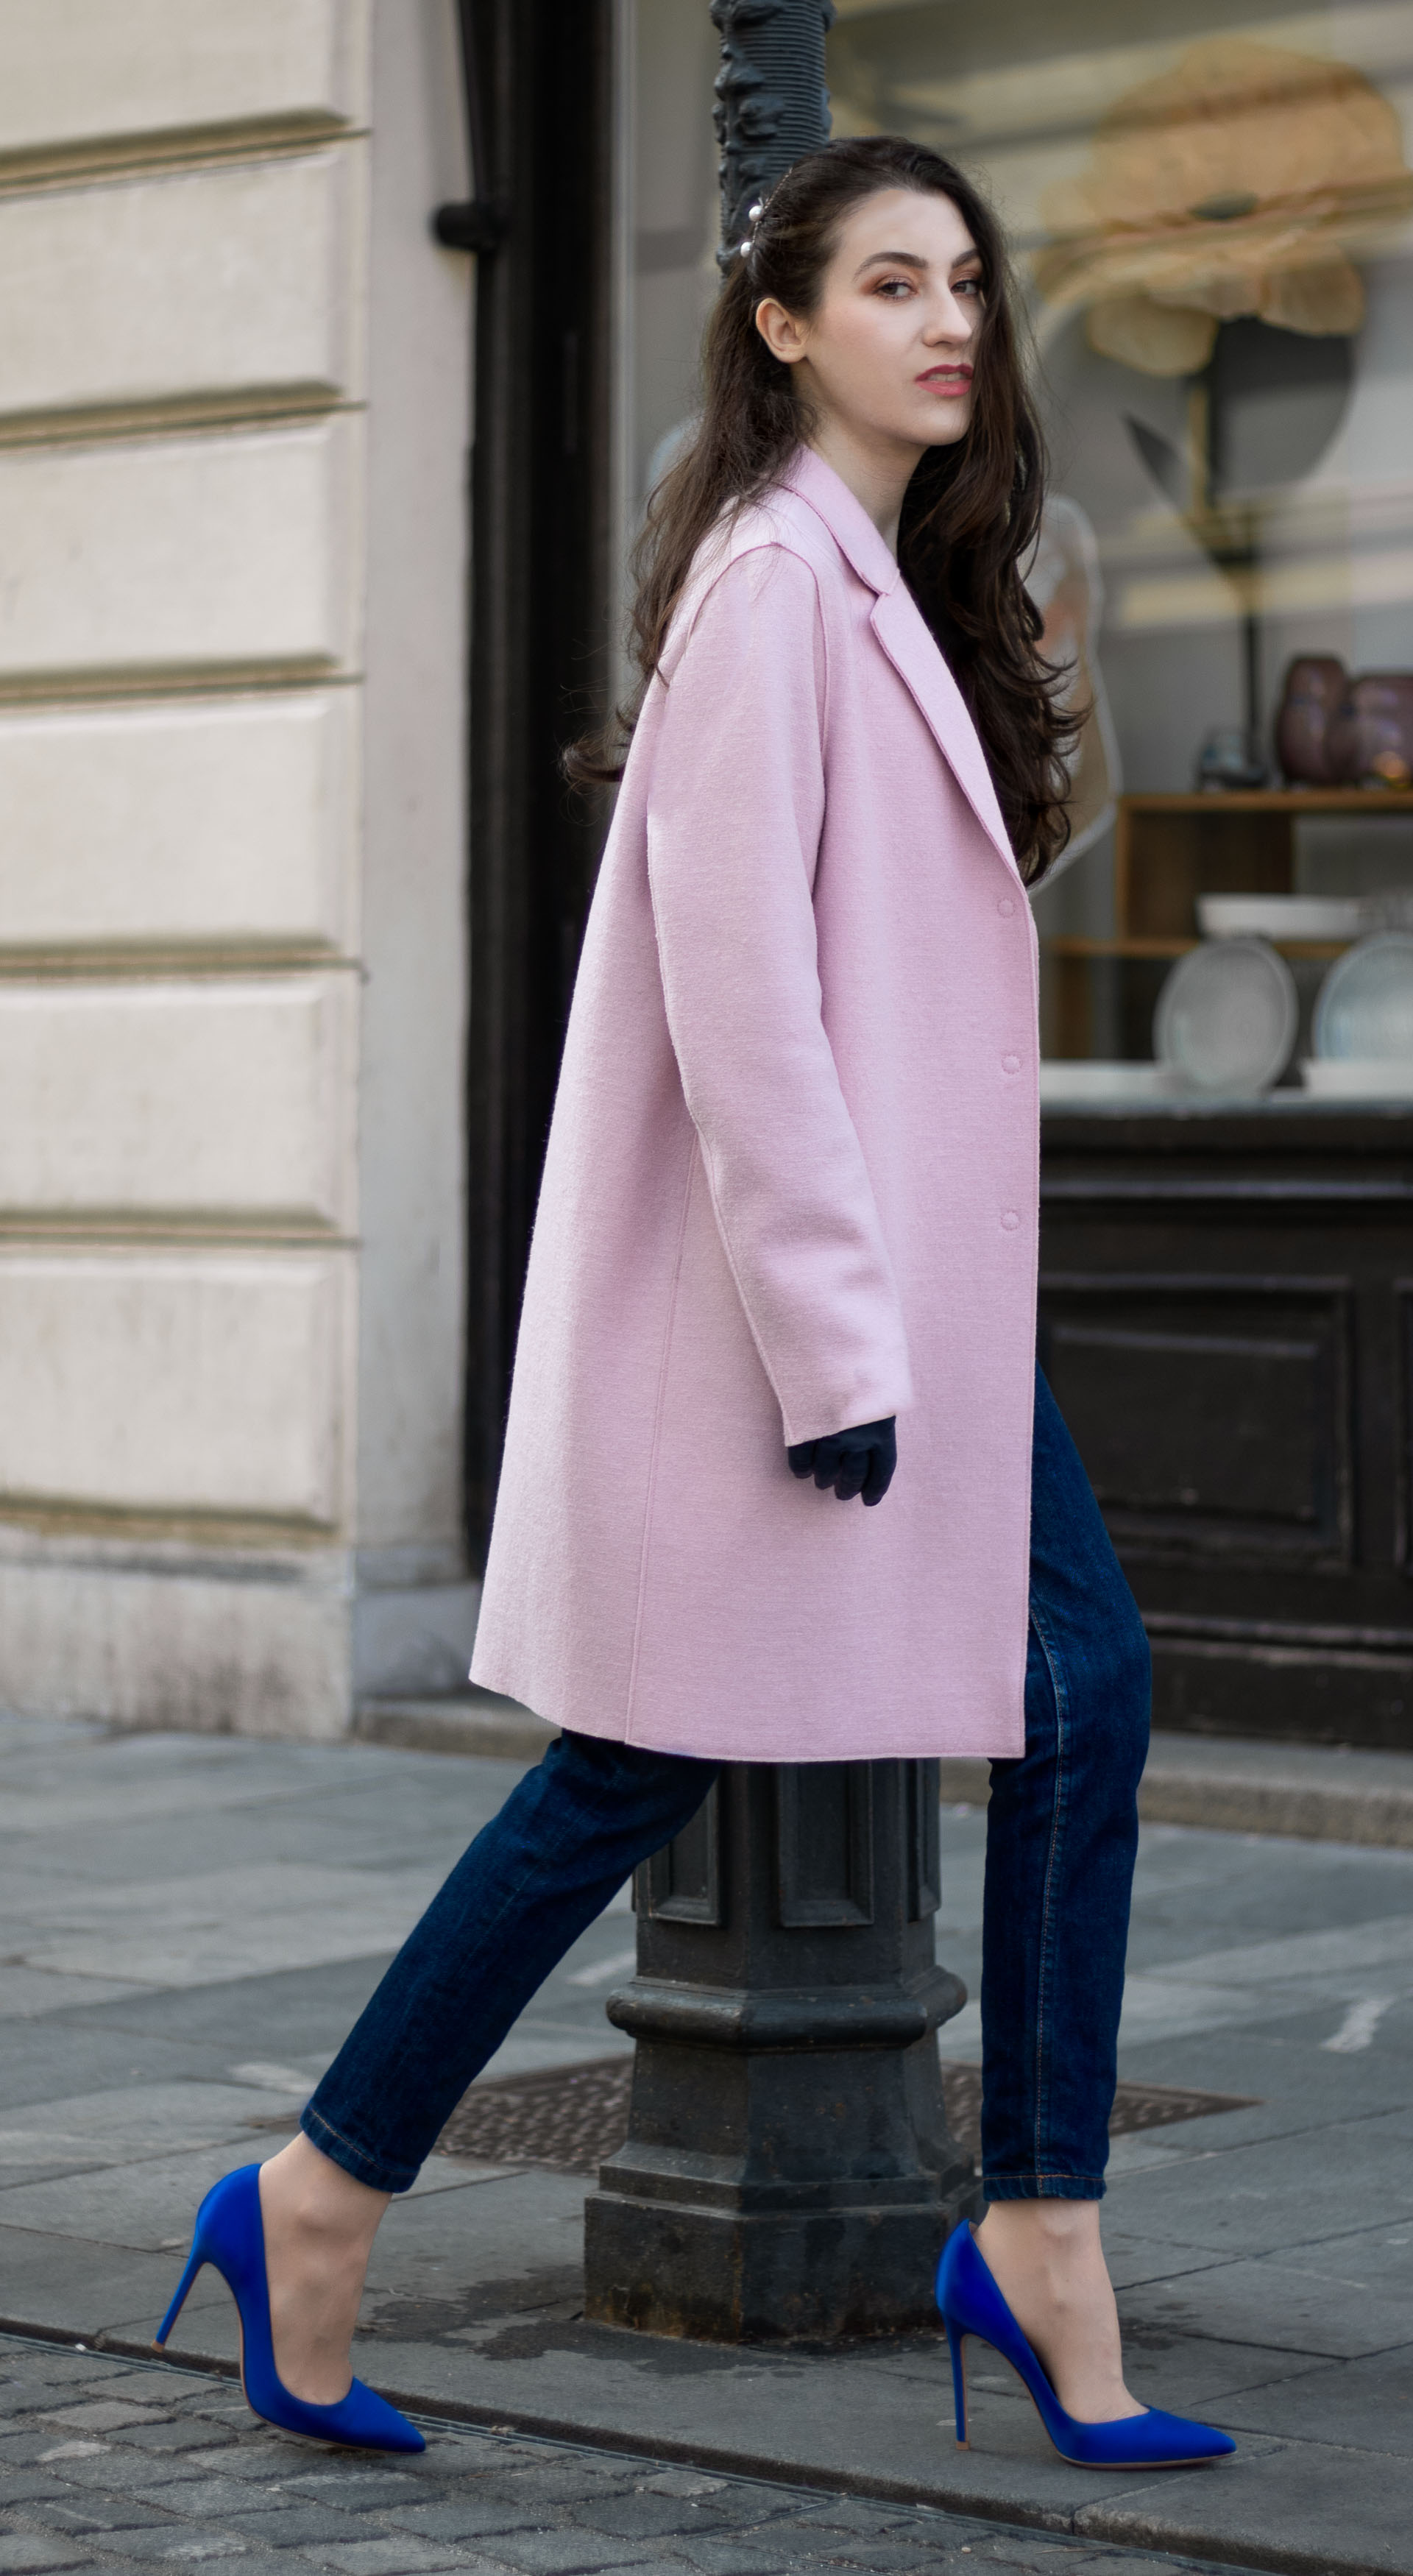 Must follow Fashion Blogger Veronika Lipar of Brunette from Wall Street wearing oversize pink Harris Wharf London coat A.P.C. Paris dark blue denim jeans Gianvito Rossi blue pumps black top handle bag Forzieri blue leather gloves pearl hairpin walking down the street